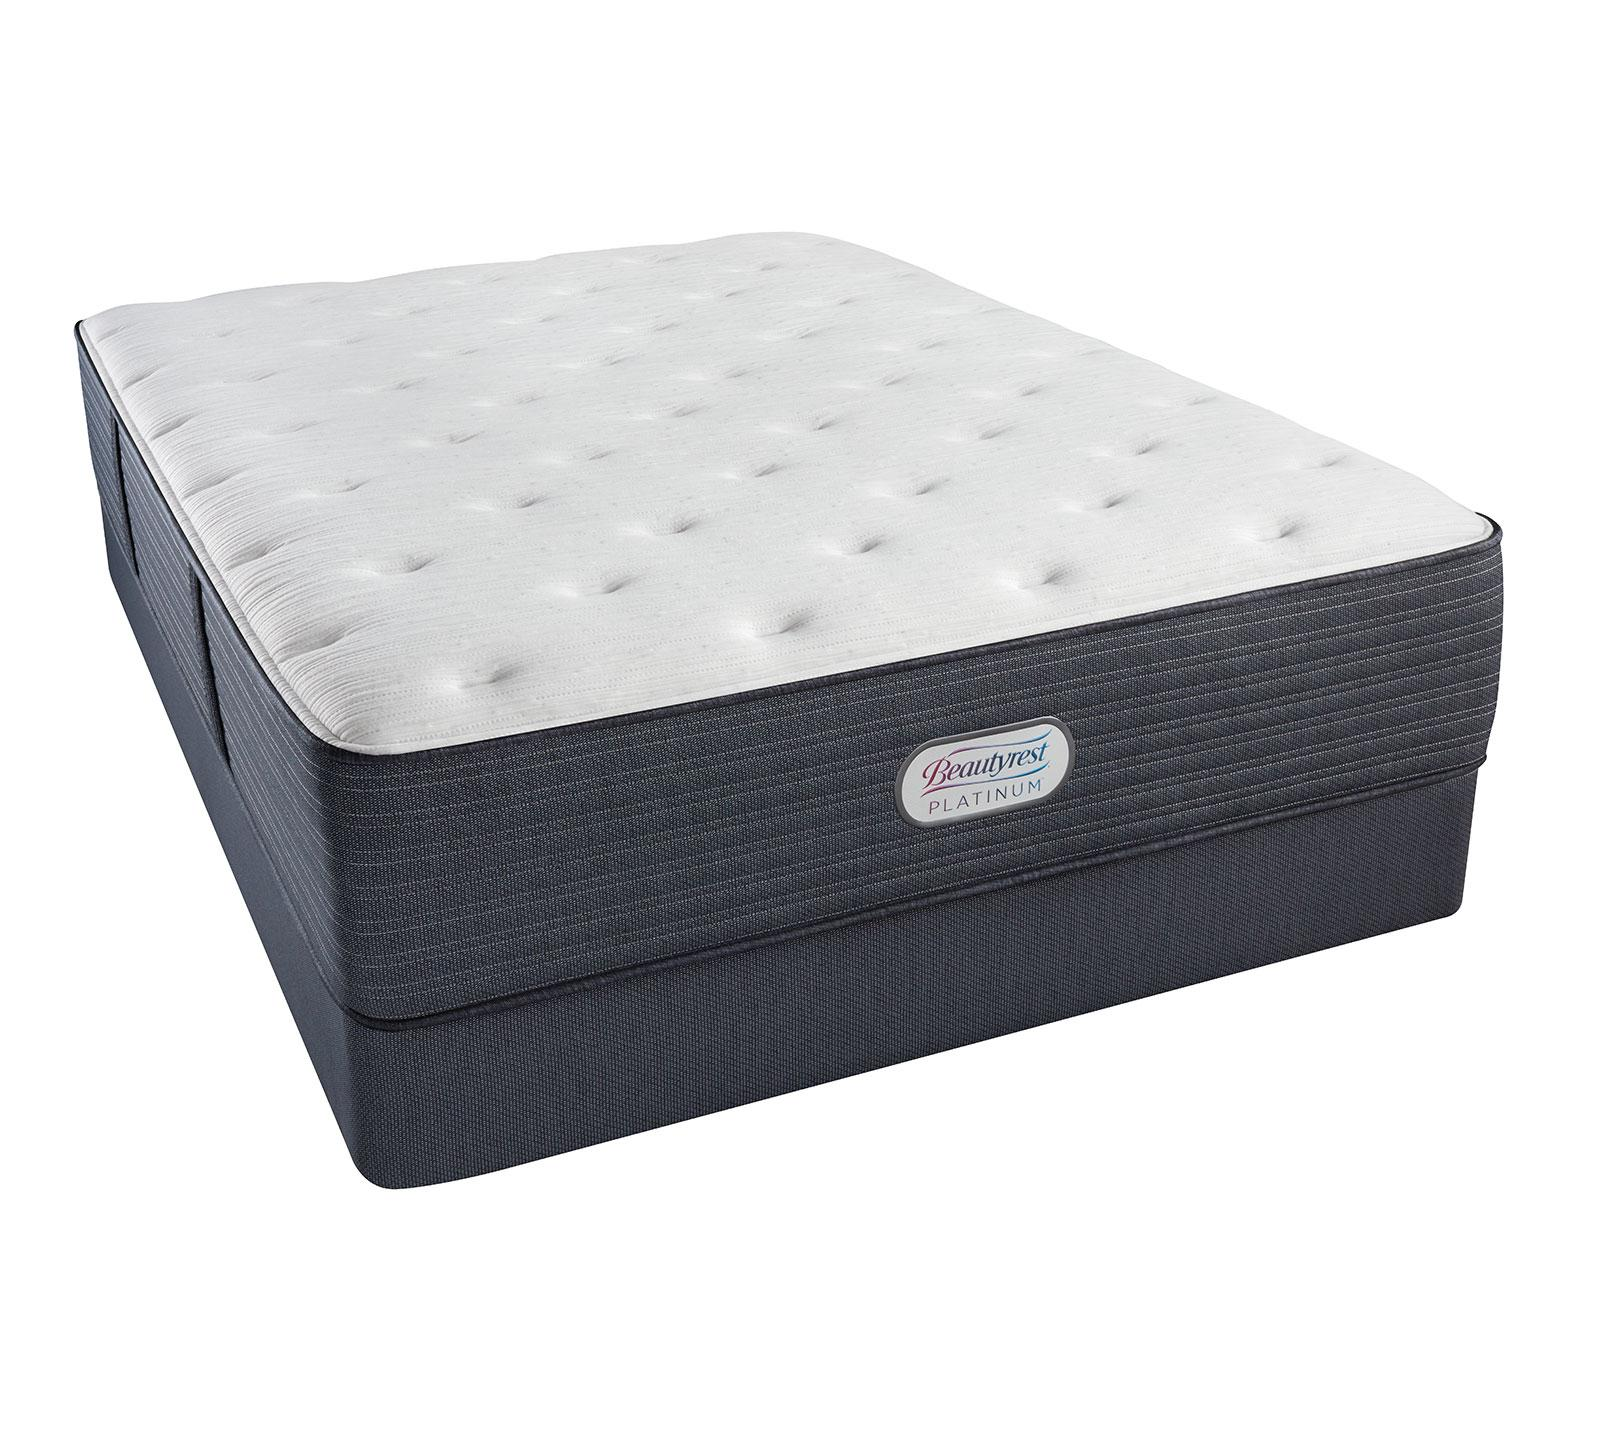 Beautyrest Platinum Plush